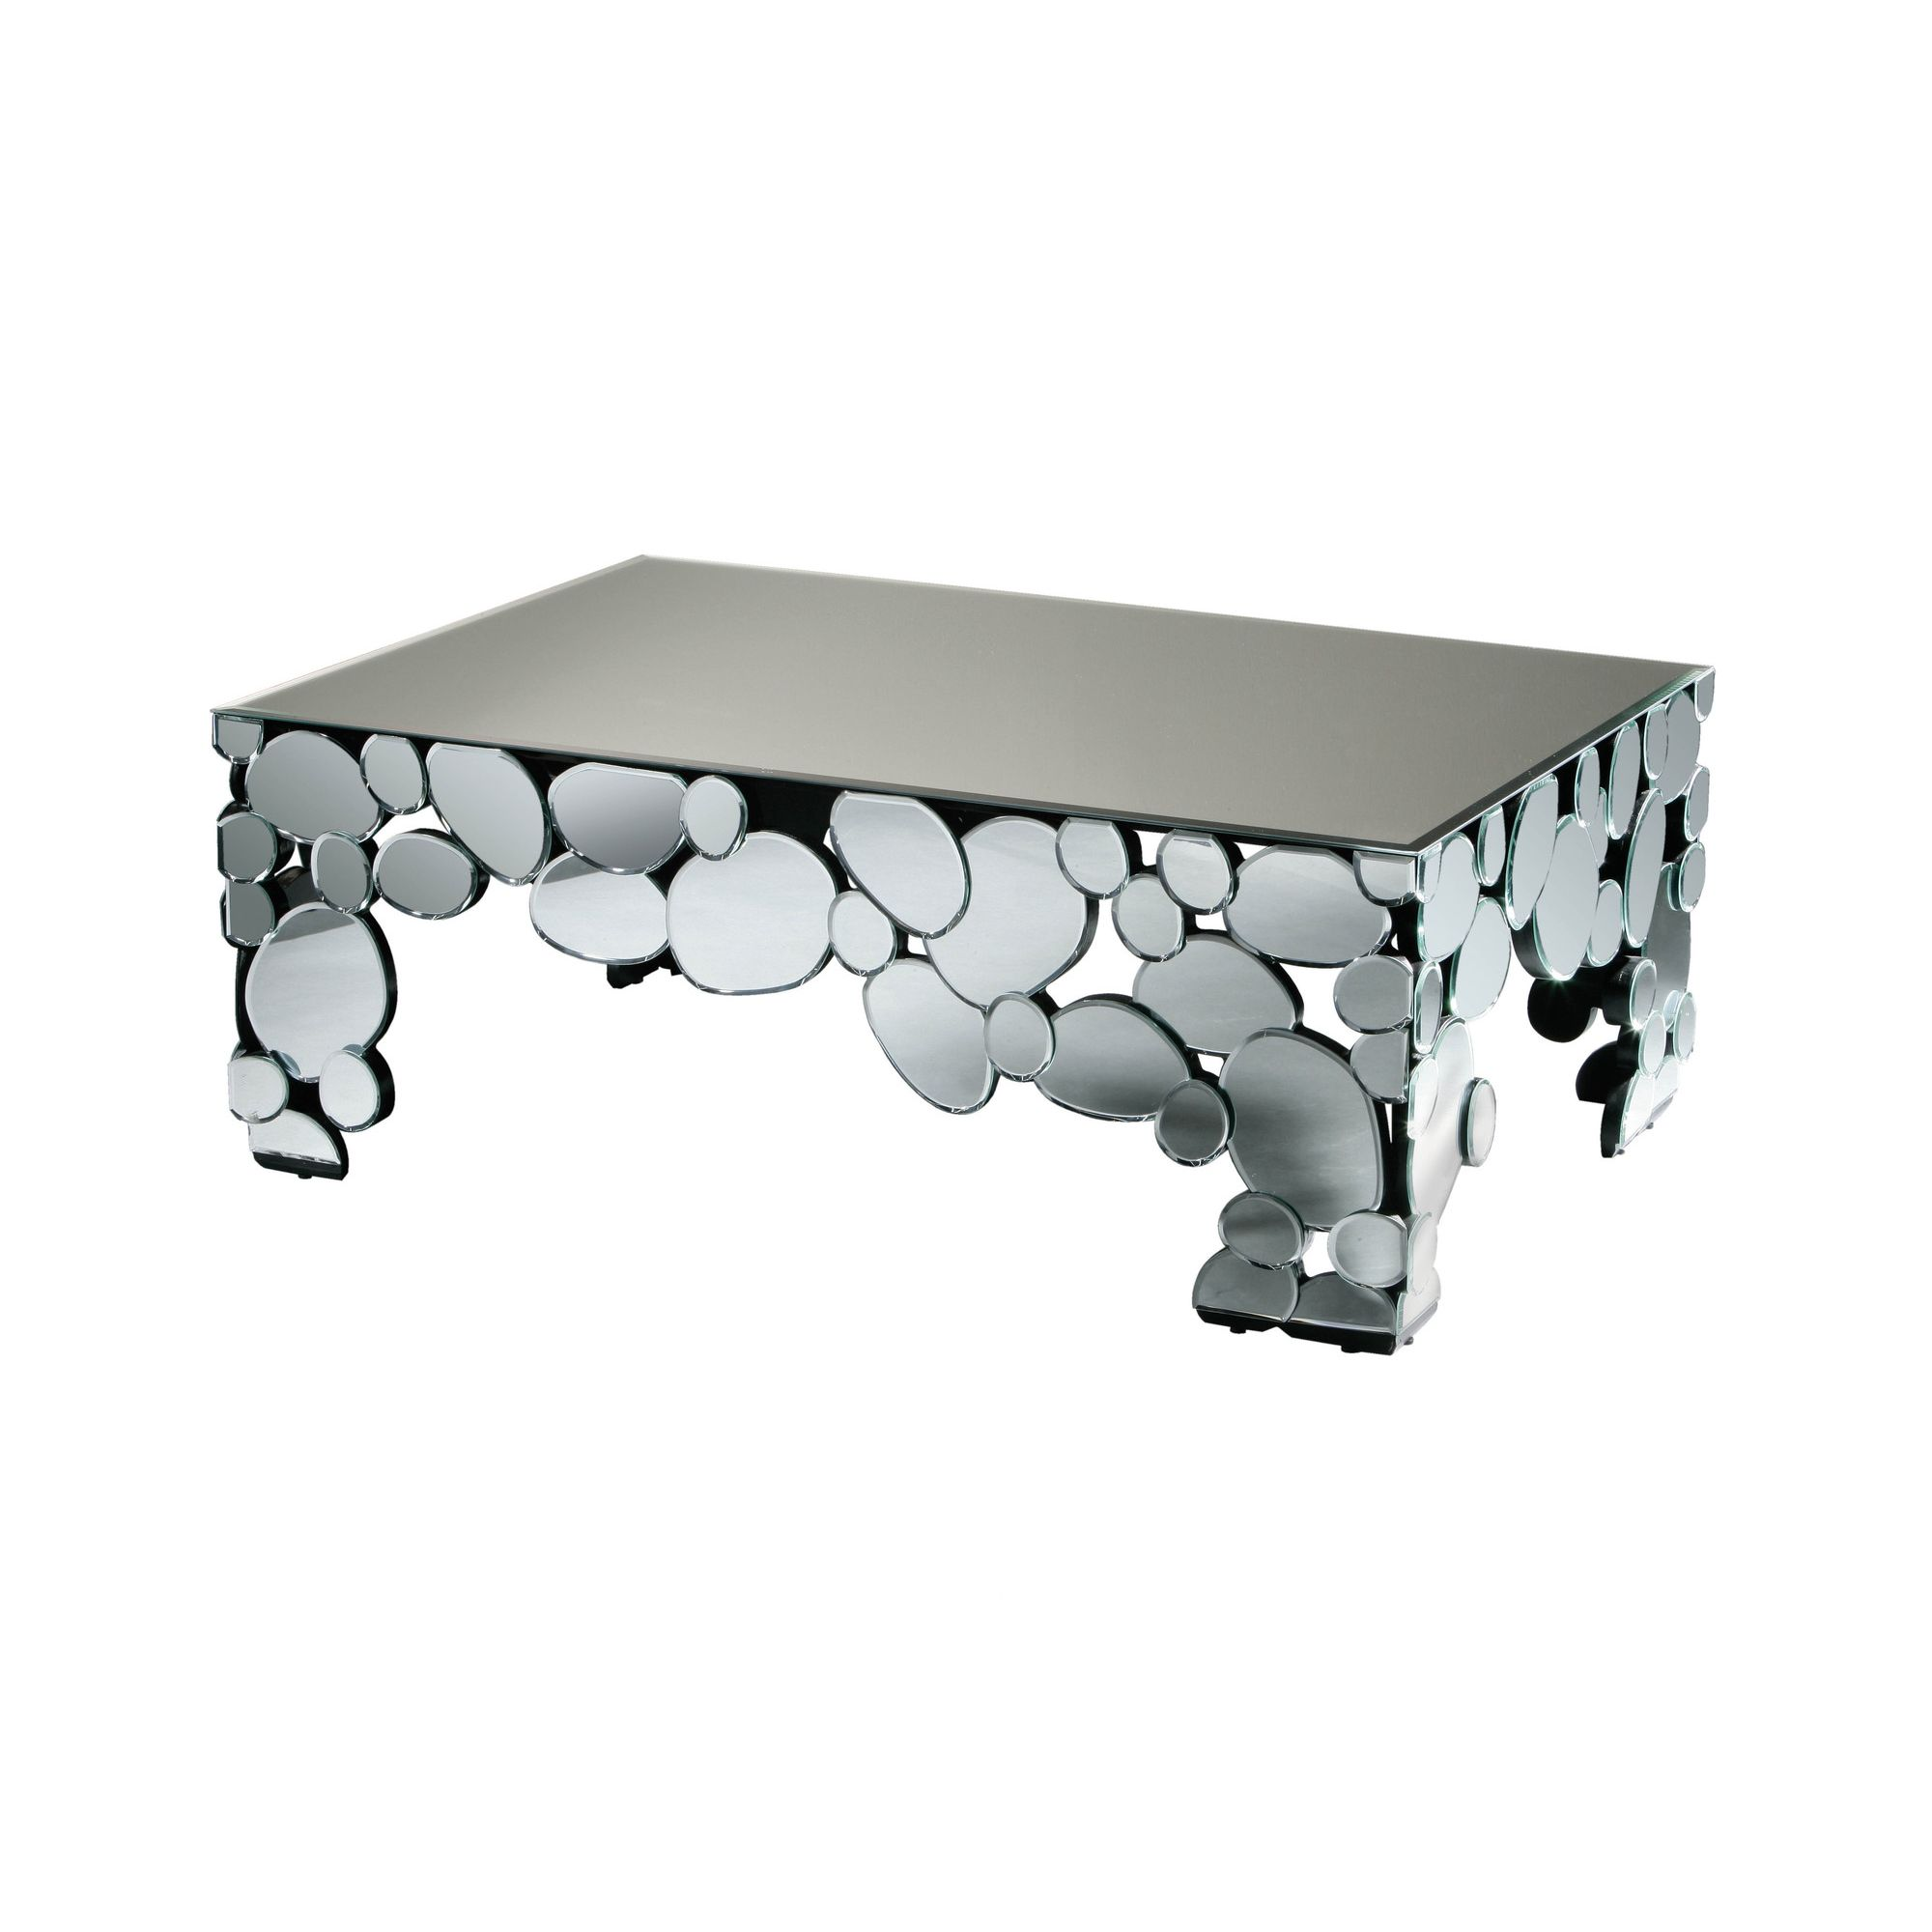 Premier Housewares Illusions Coffee Table at Tesco Direct